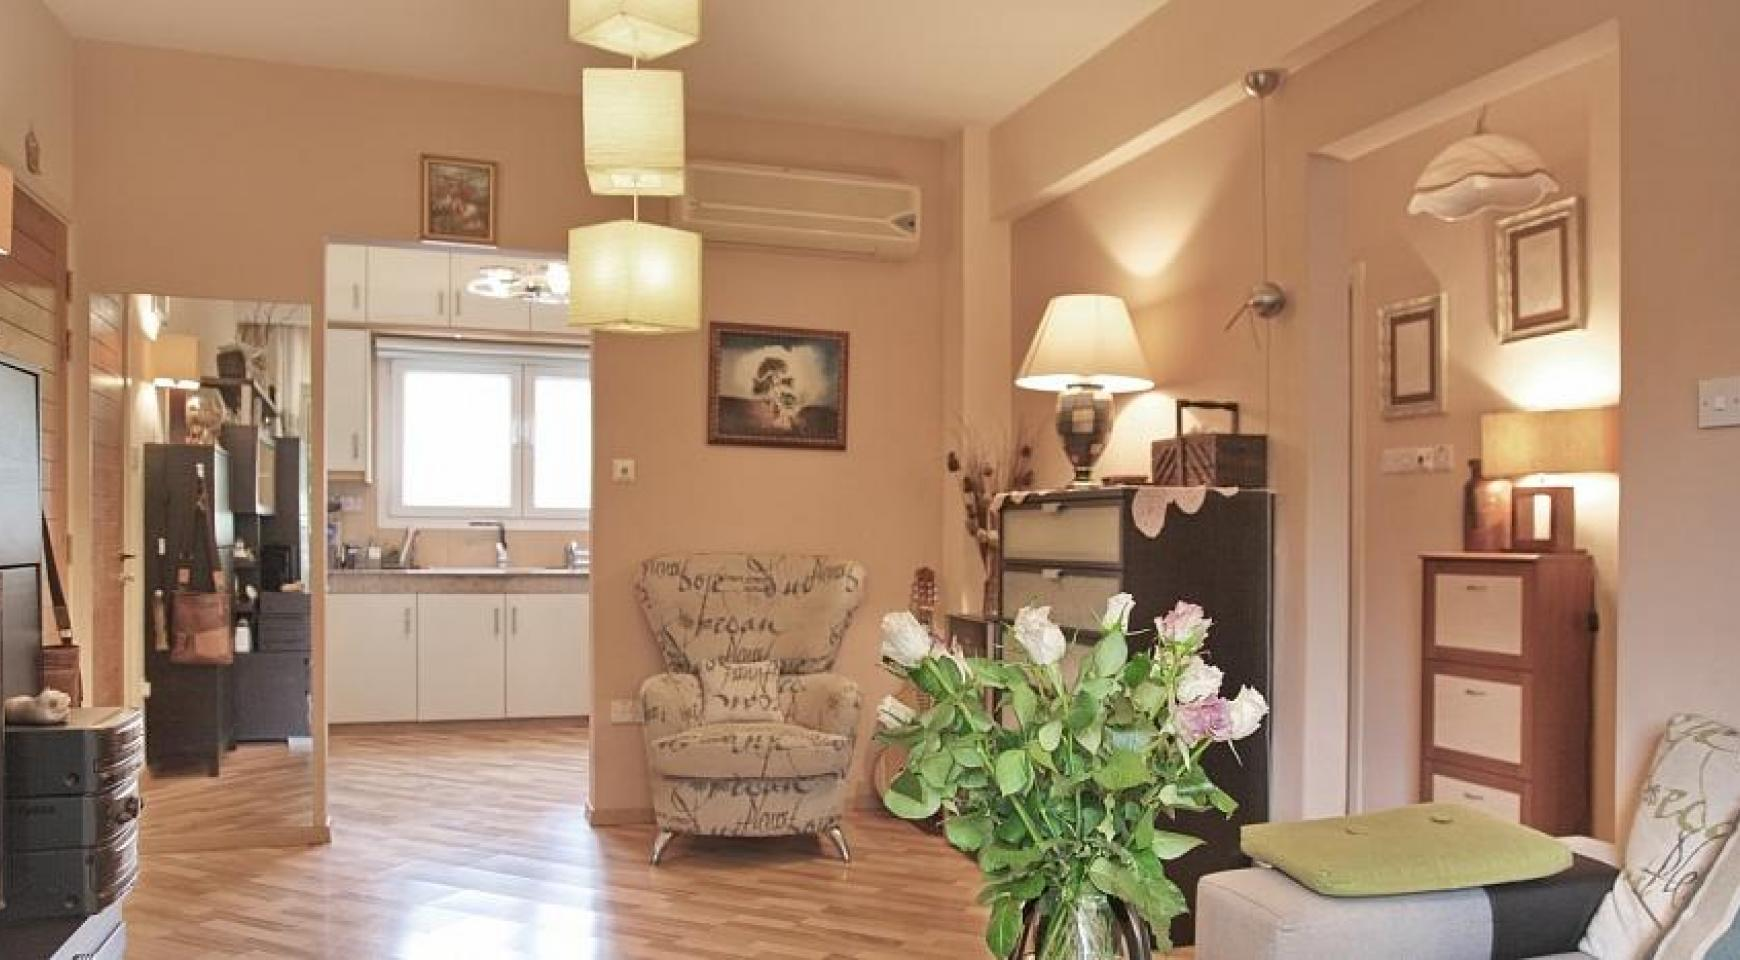 SPECIAL OFFER! 2 Bedroom Apartment with Private Garden - 2